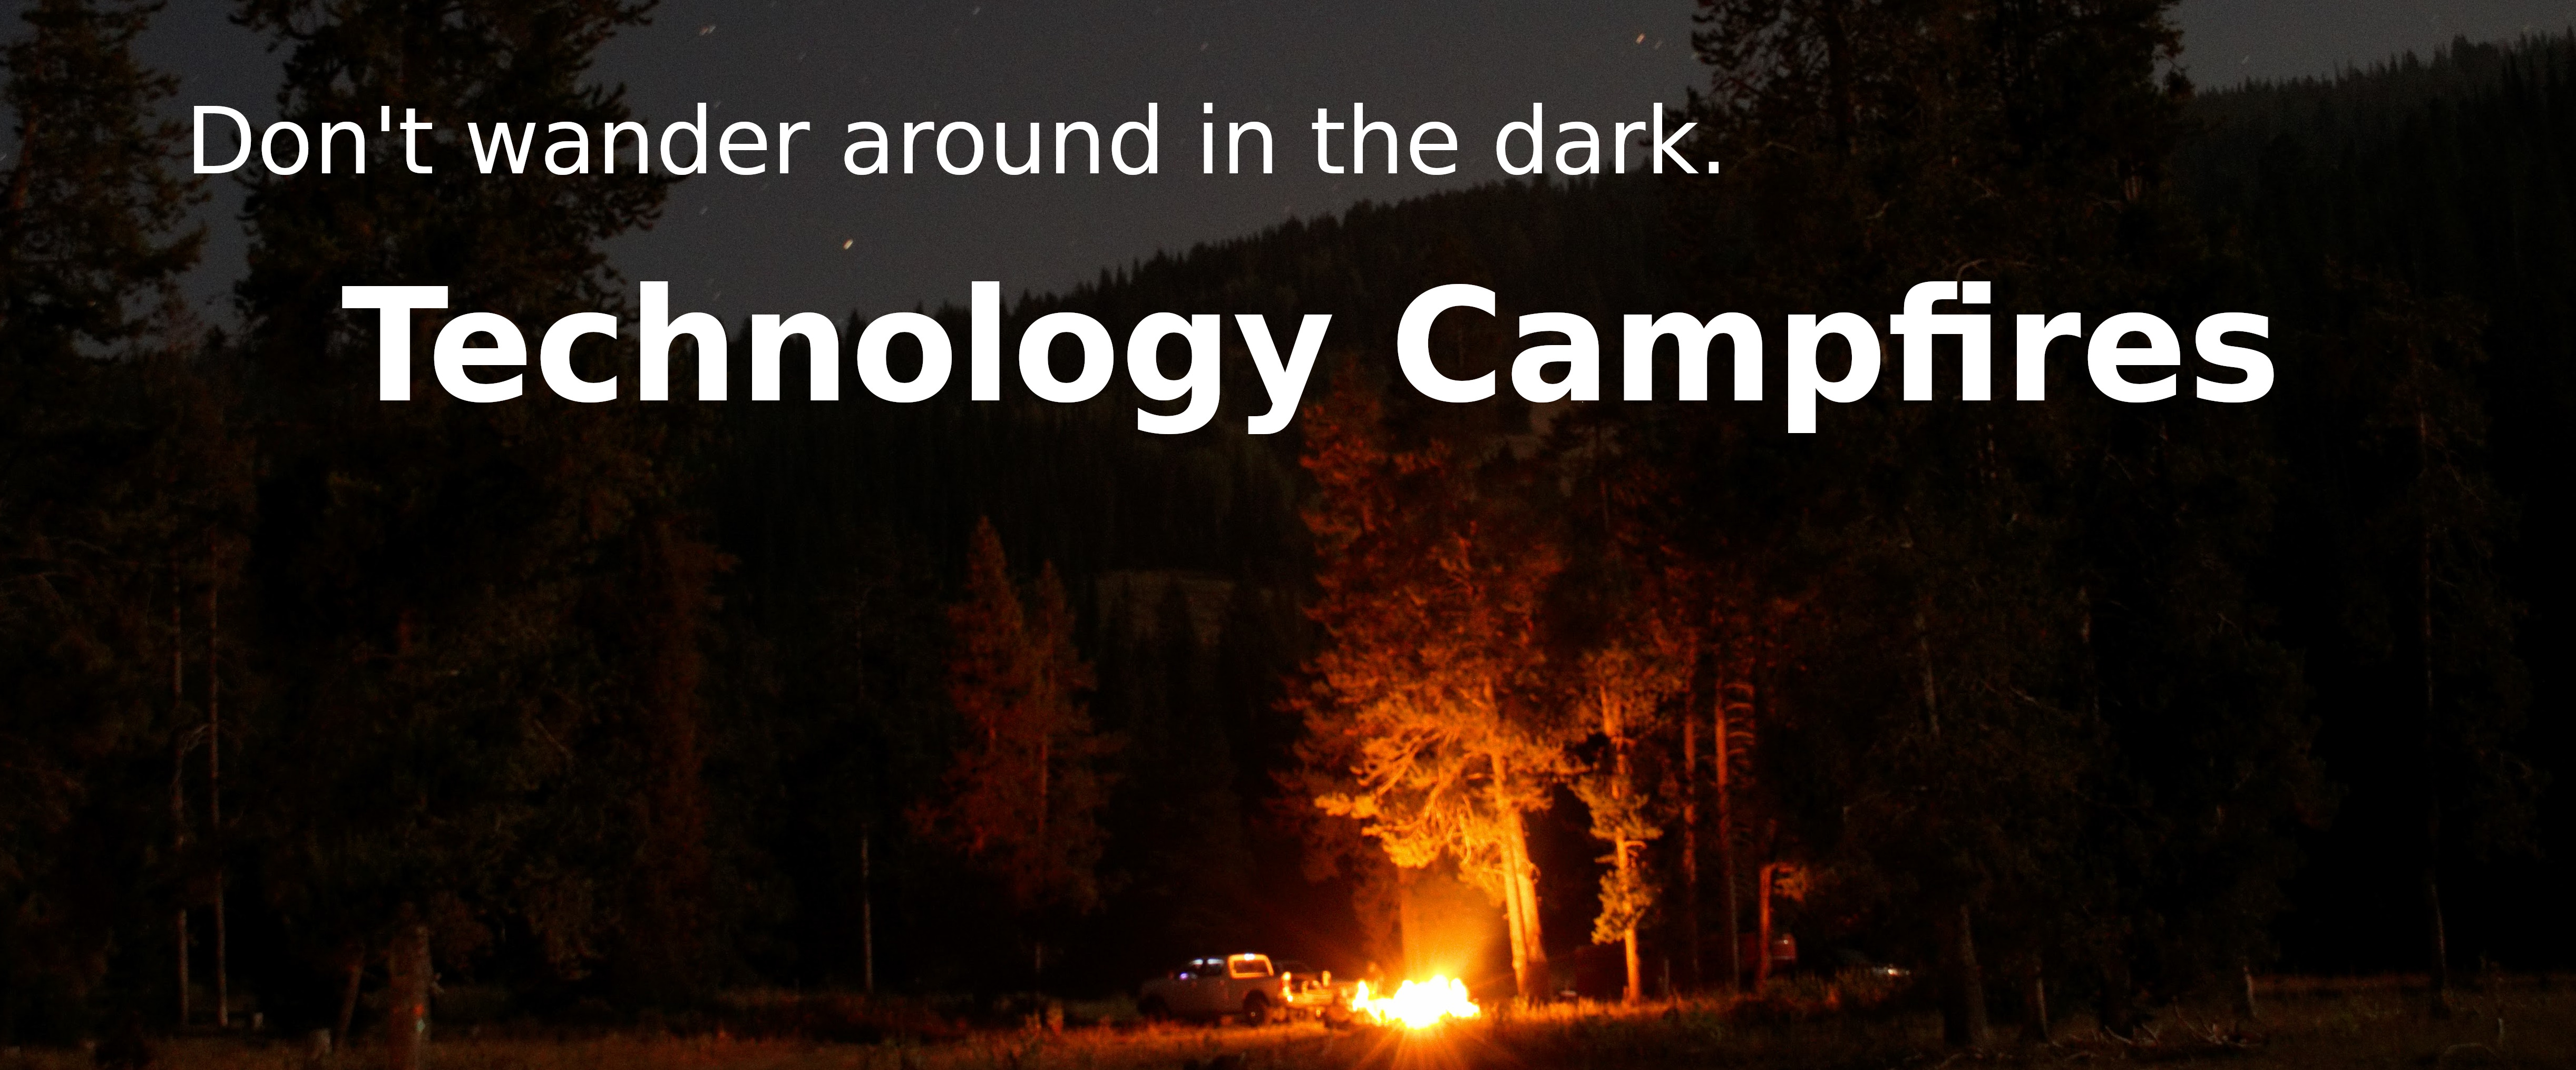 Technology Campfires